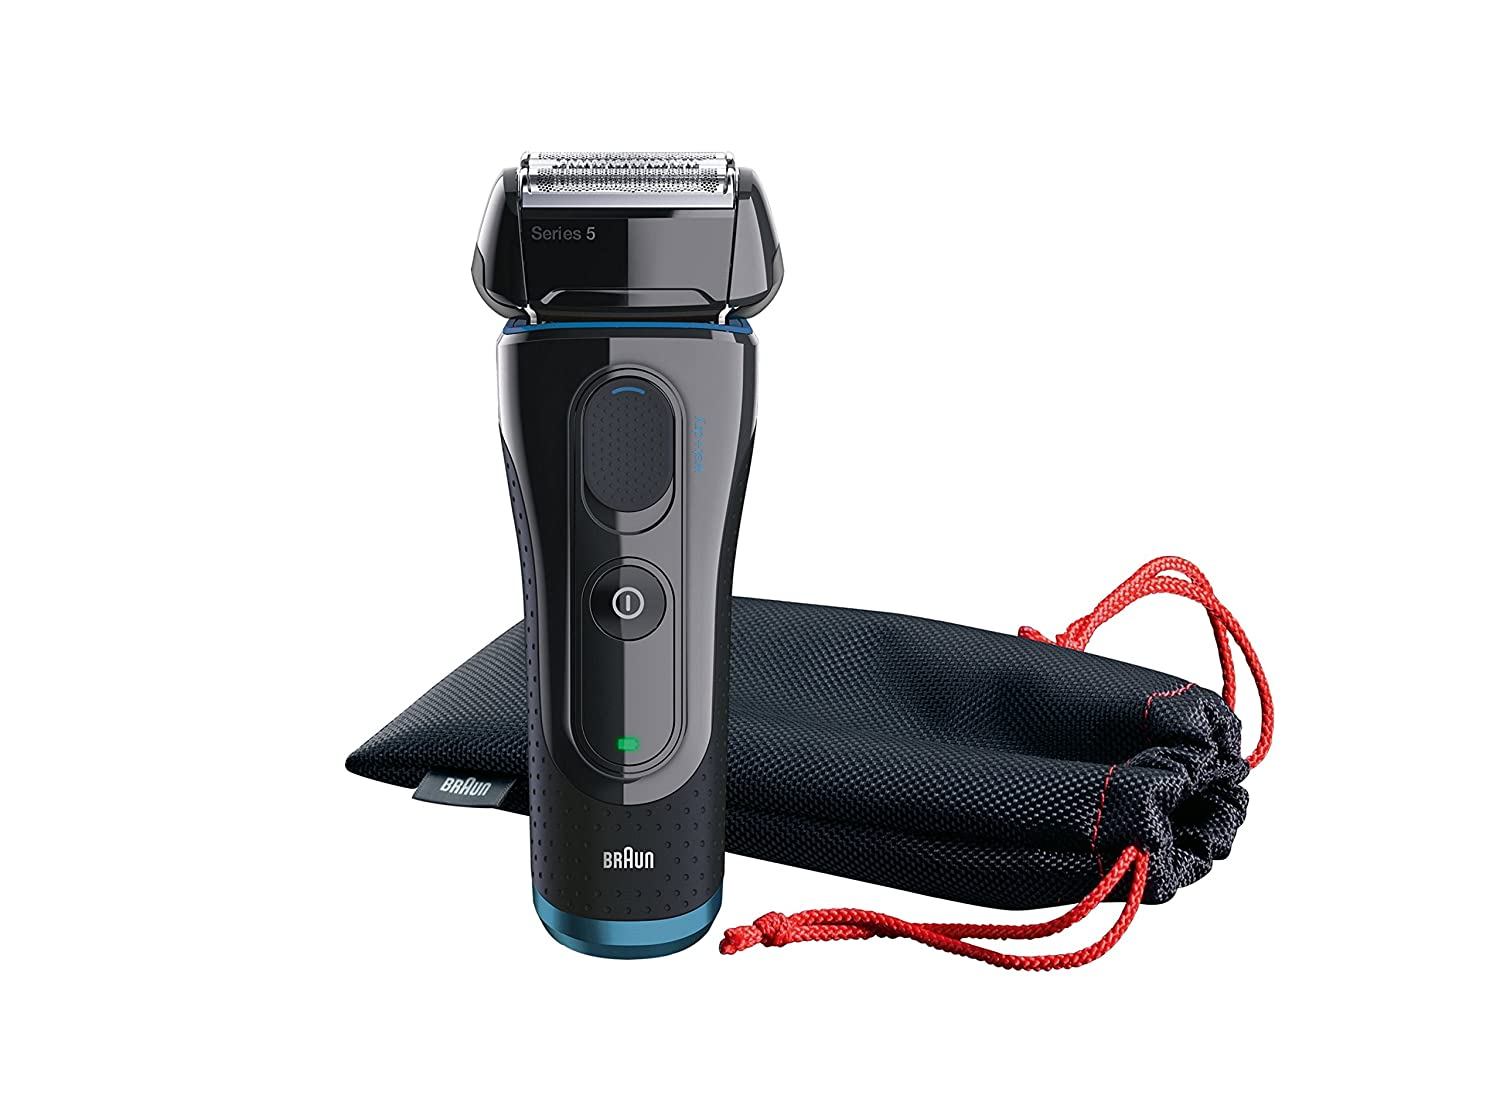 Braun Series 5 5040 Men's Electric Foil Shaver, Wet and Dry Rechargeable Man Face Shaver Procter & Gamble 8405268